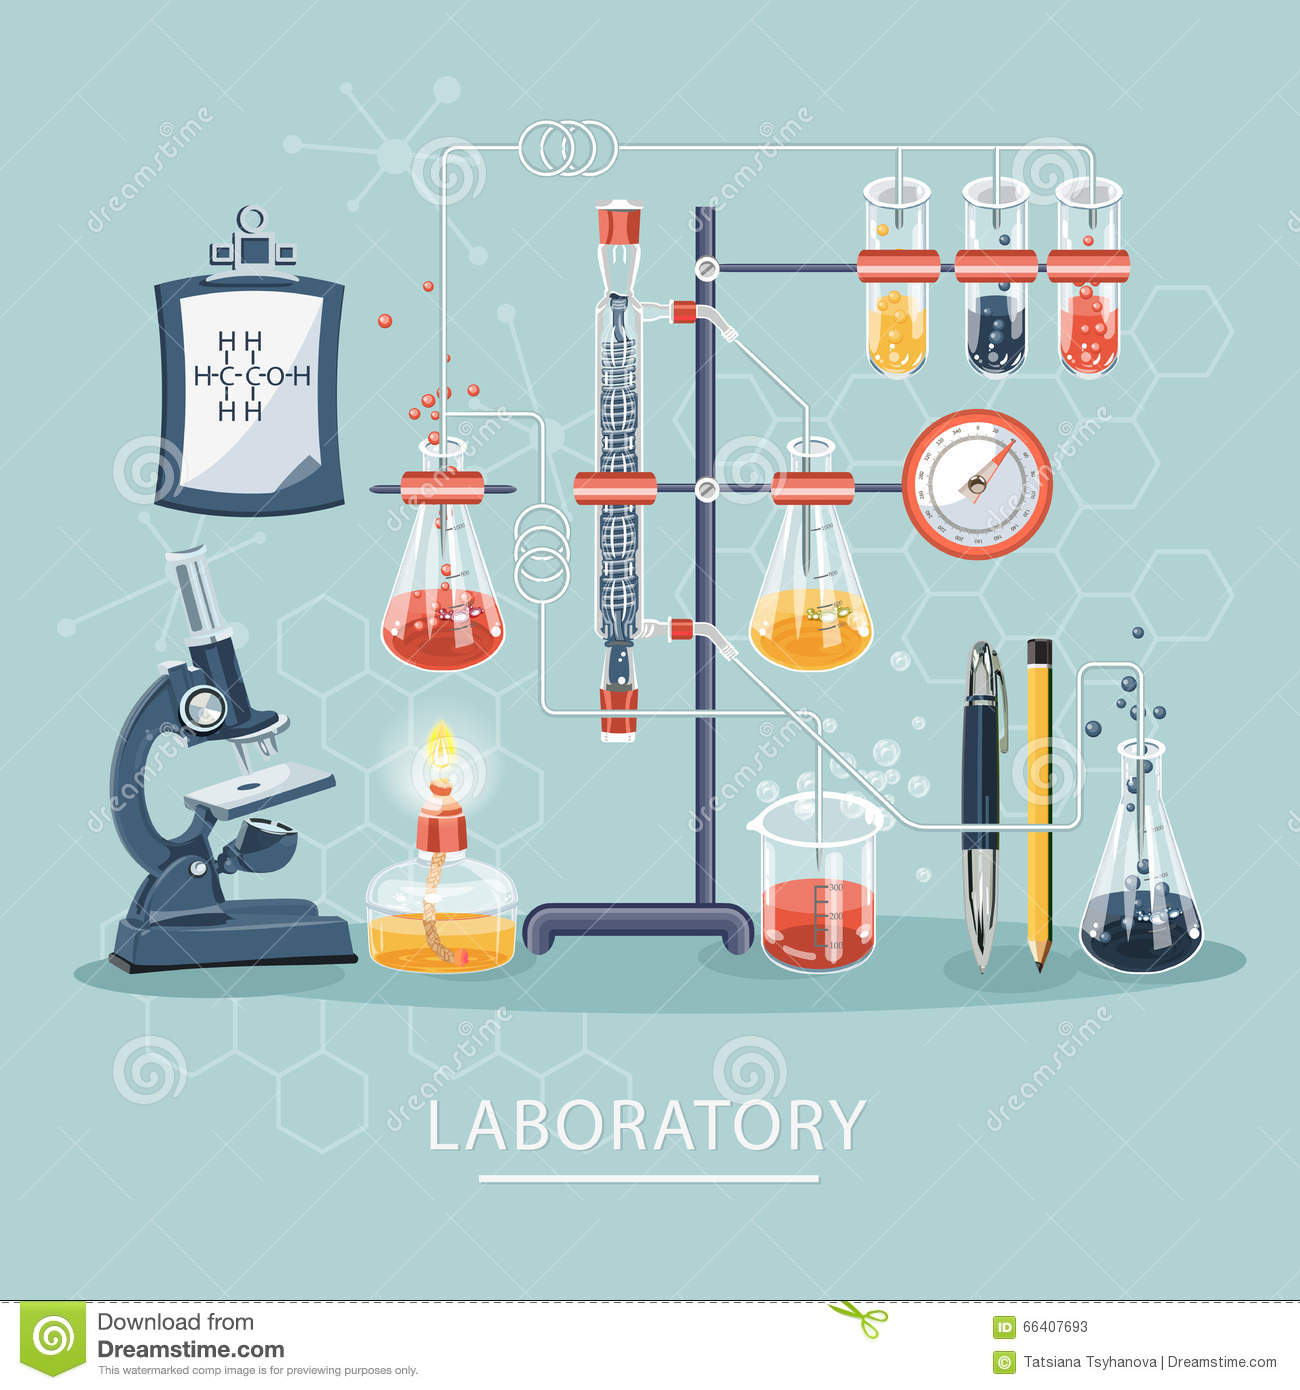 Chemistry and science infographic. Science Laboratory. Chemistry icons background for biology and medical research posters